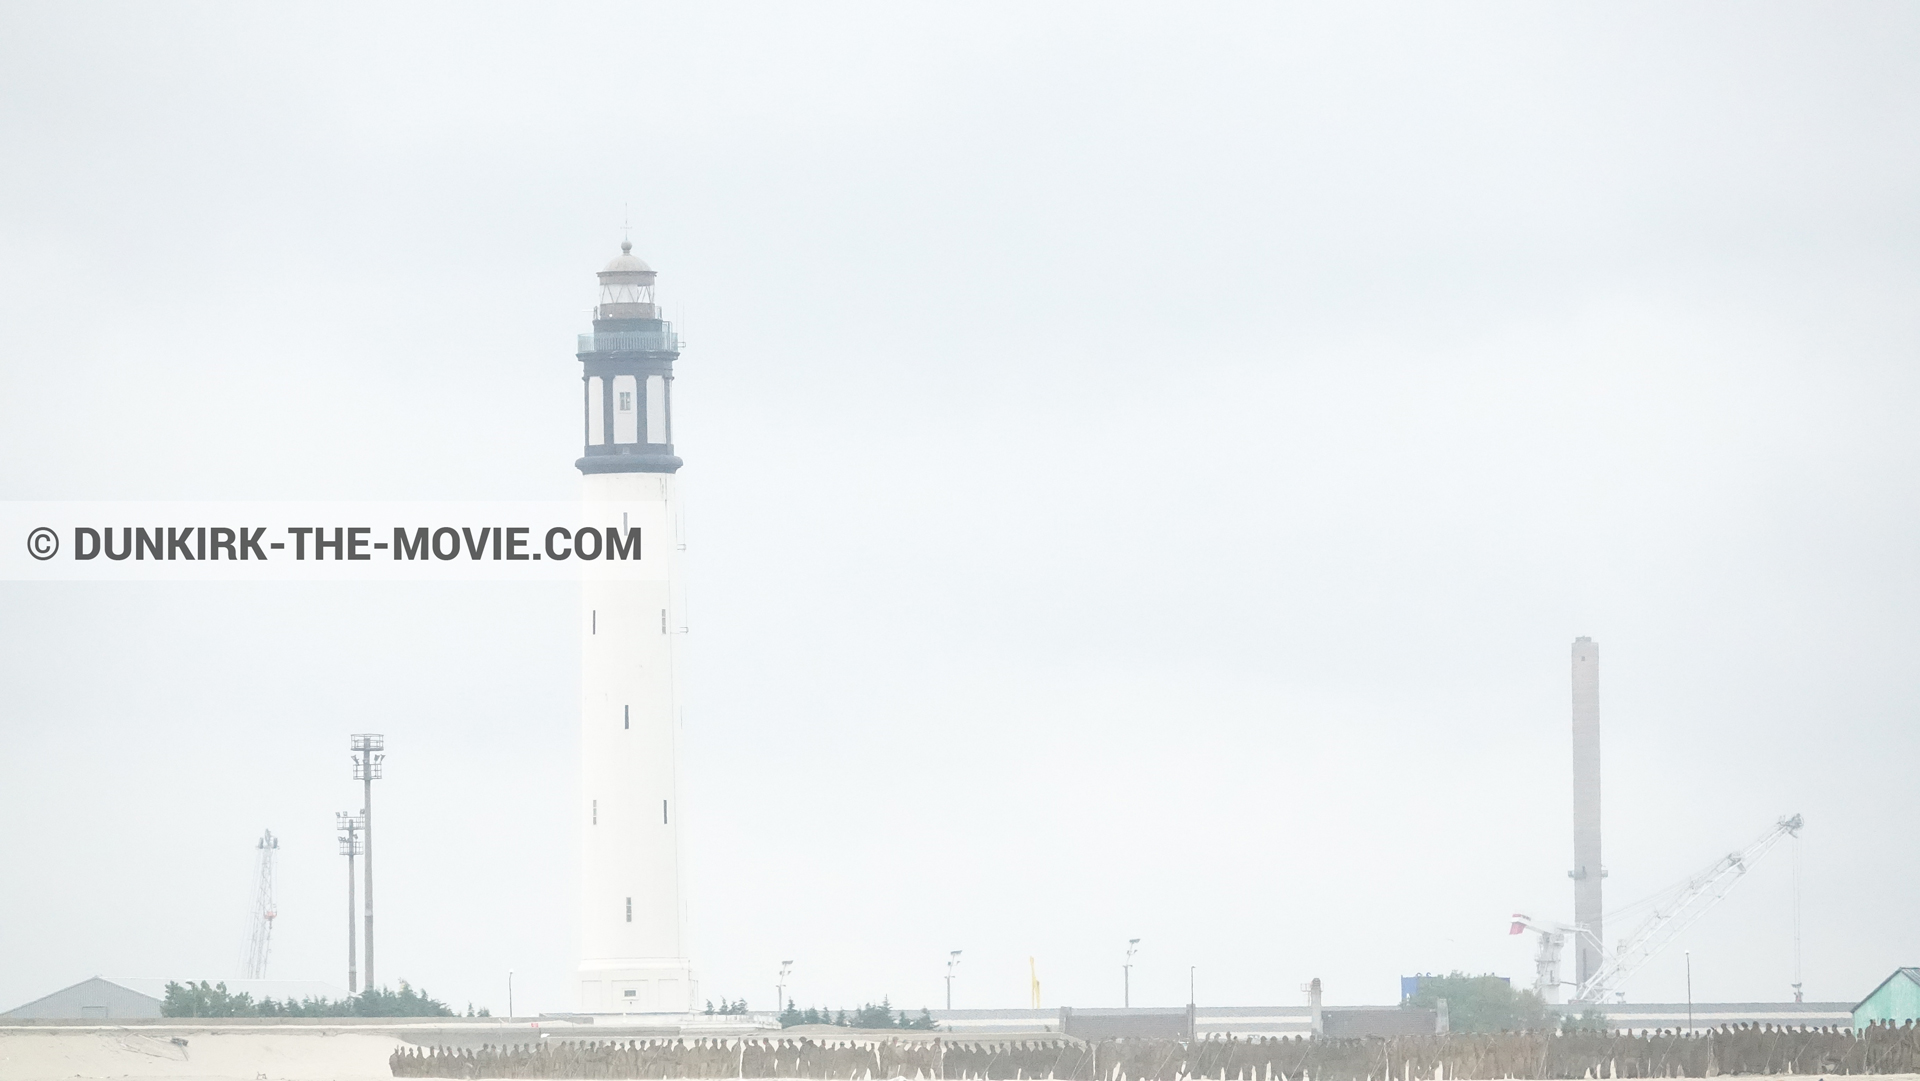 Picture with Dunkirk lighthouse,  from behind the scene of the Dunkirk movie by Nolan